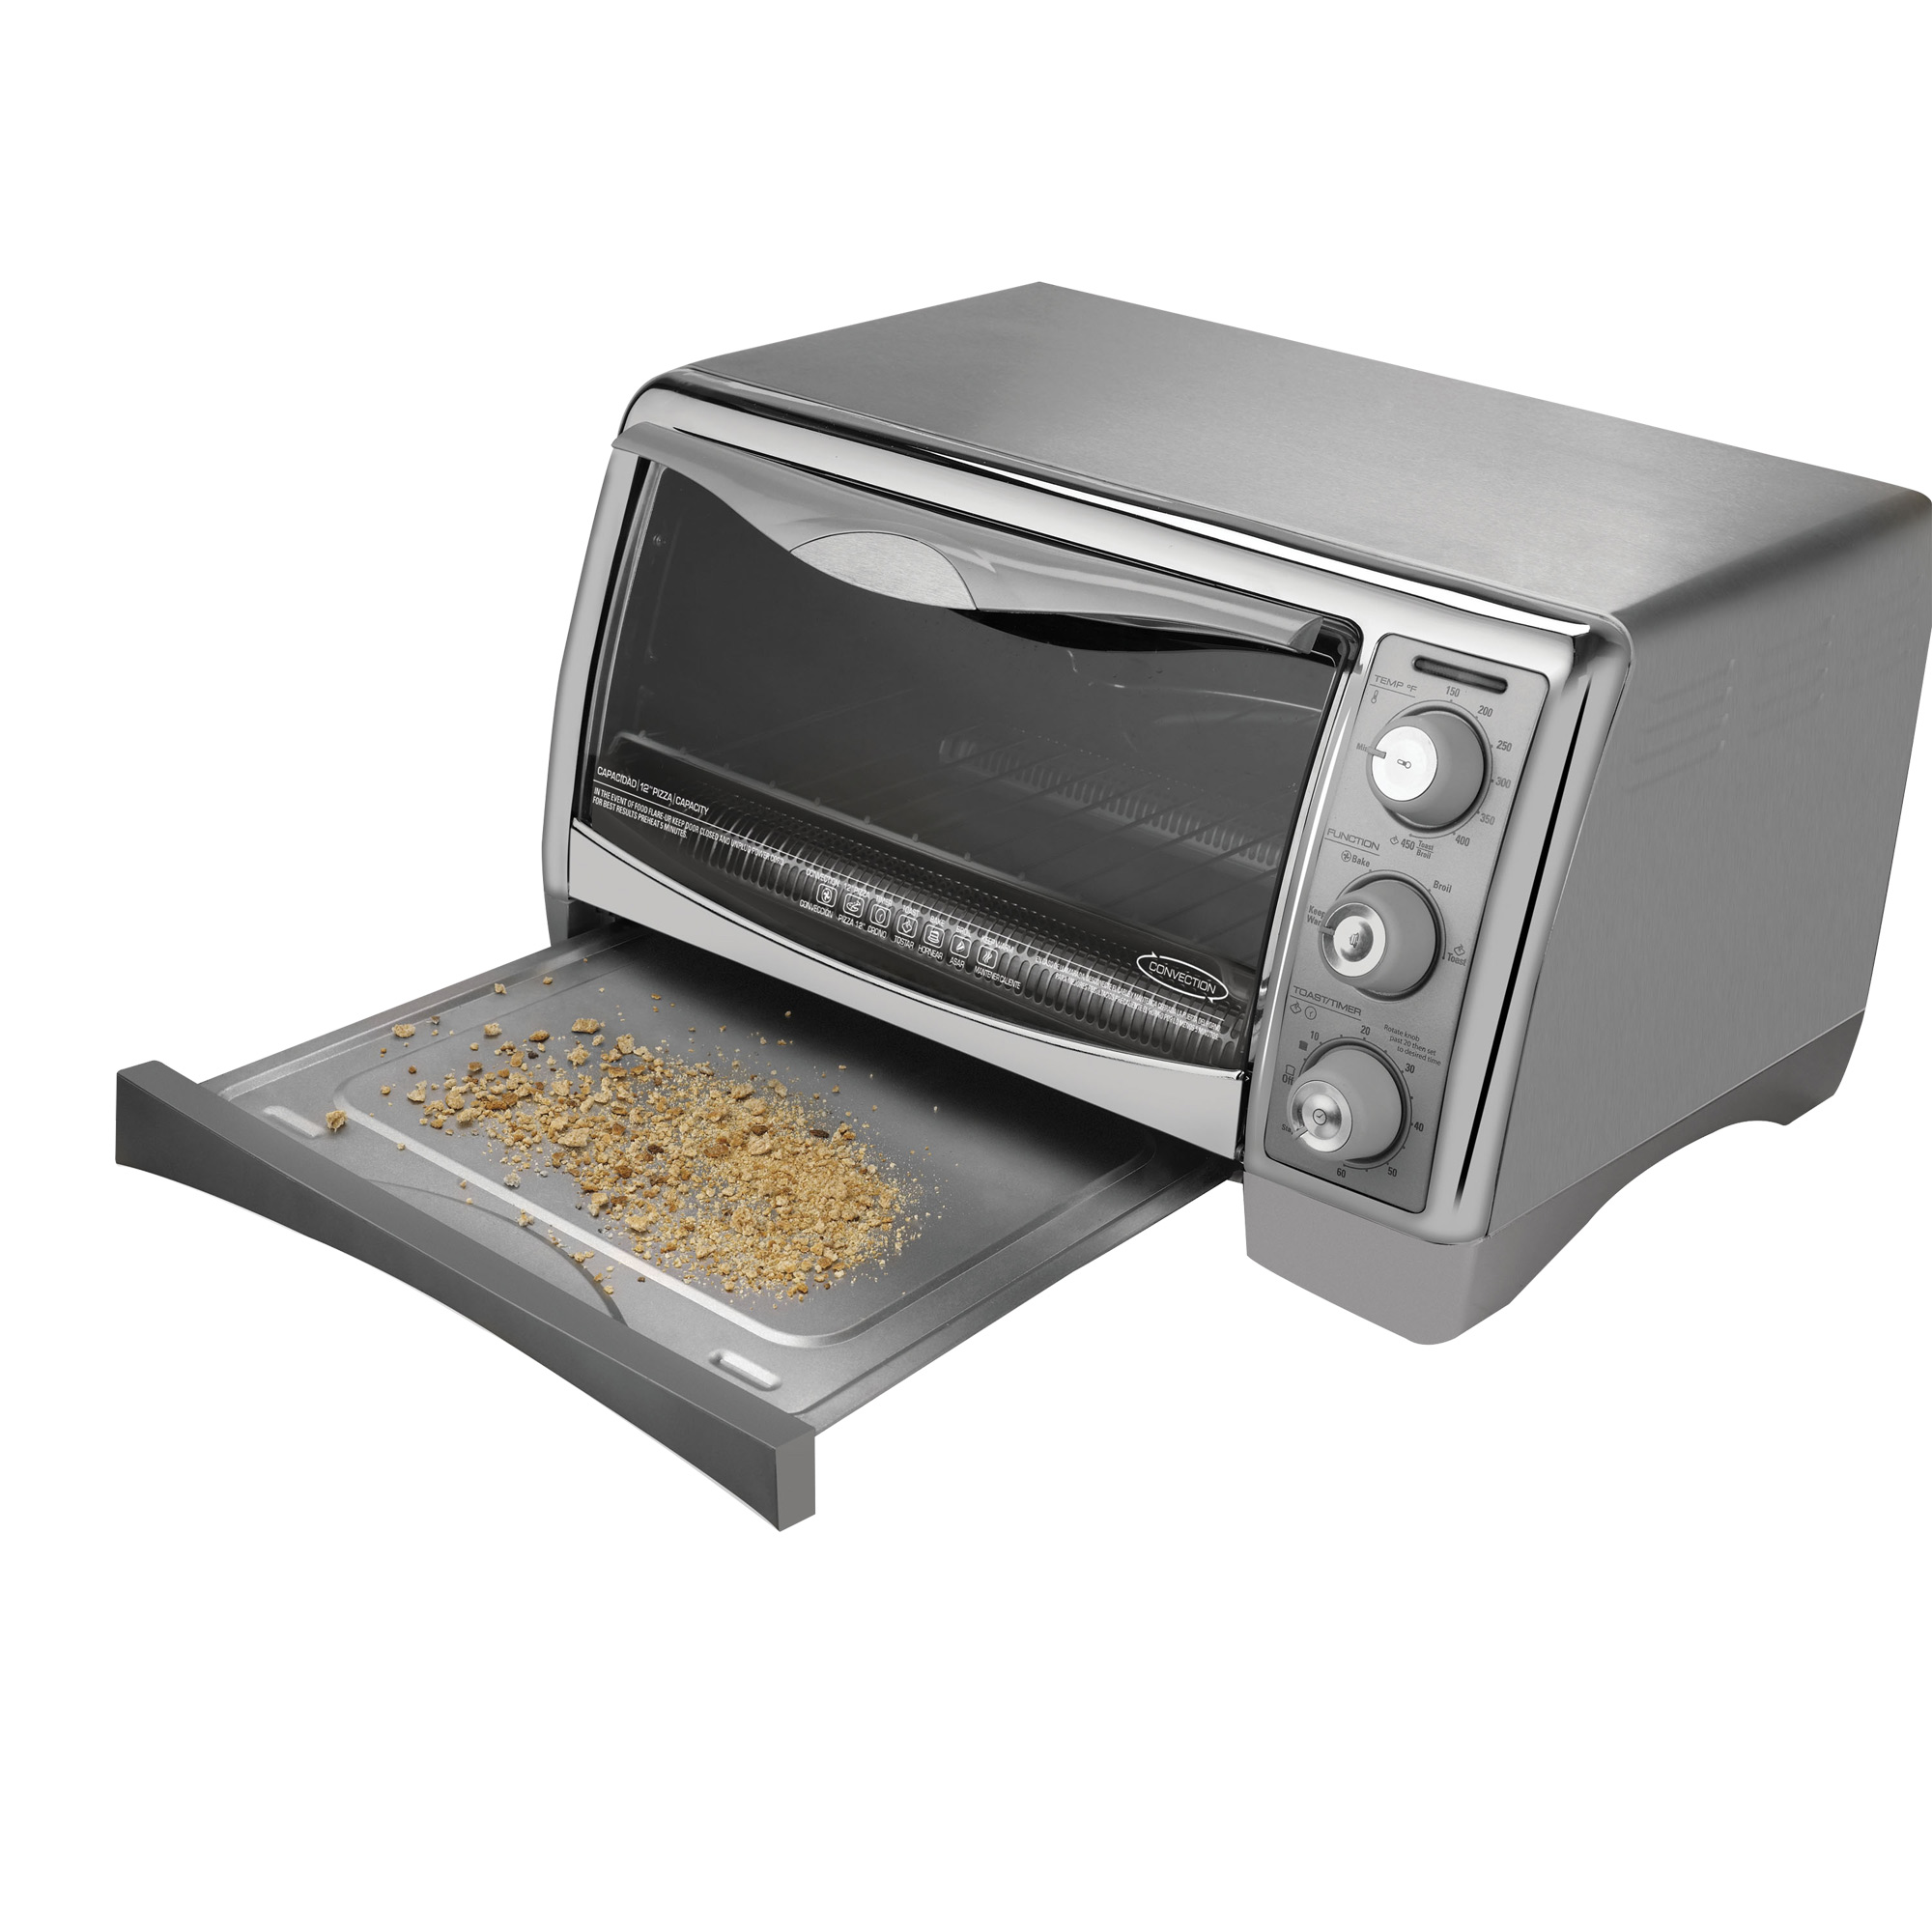 Black And Decker Countertop Convection Oven Parts : Black and Decker Digital Advantage Toaster Oven CTO4500S